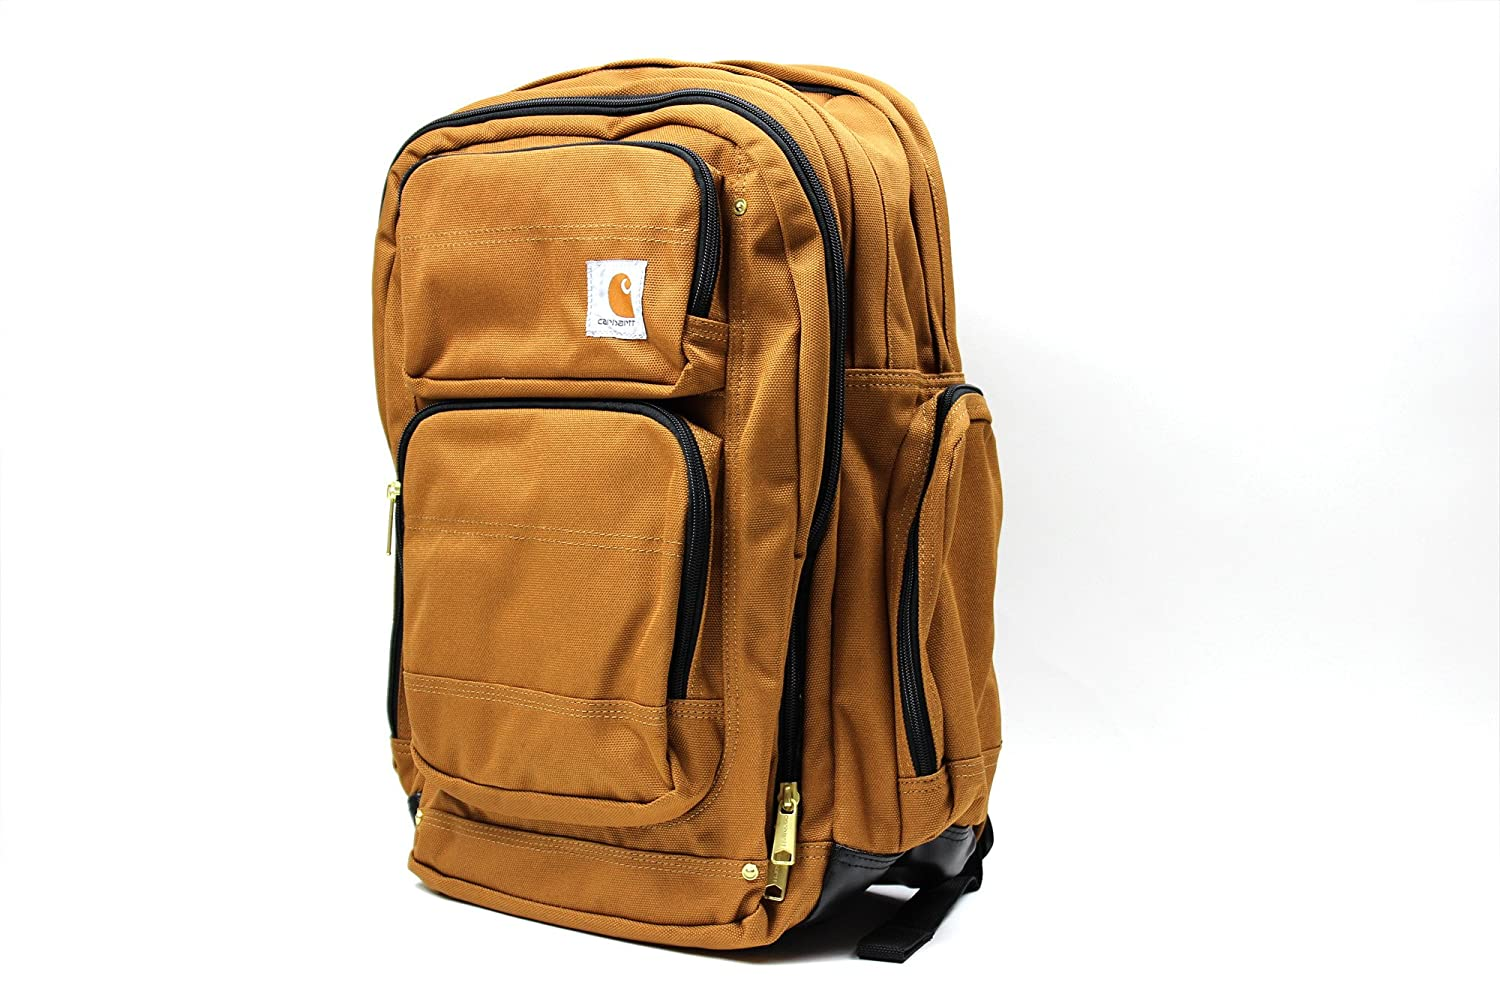 CARHARTT (カーハート) LEGACY DELUXE WORK PACK バックパック [並行輸入品] B073F3PZ3L CARHARTT BROWN